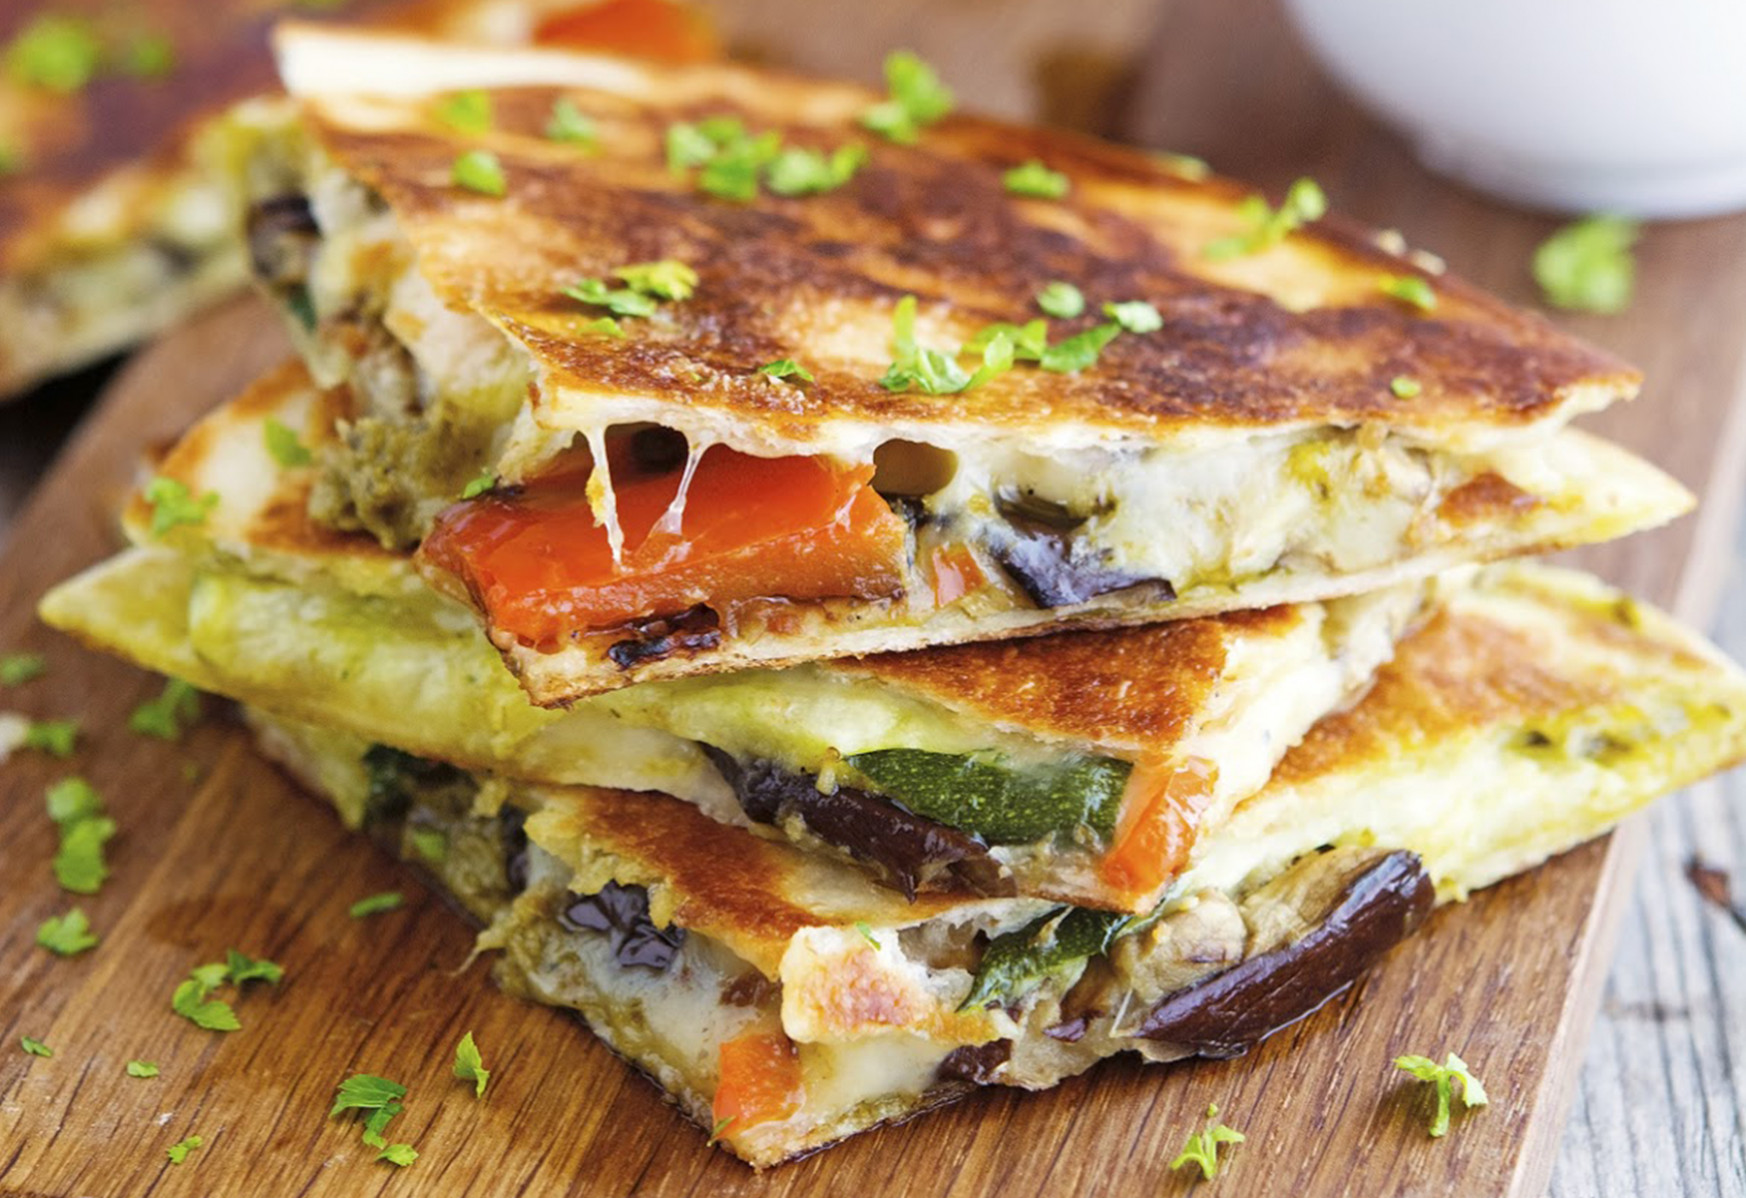 BBQ Recipes If You Want to Grill Unexpected Foods - vegetarian recipes on the grill